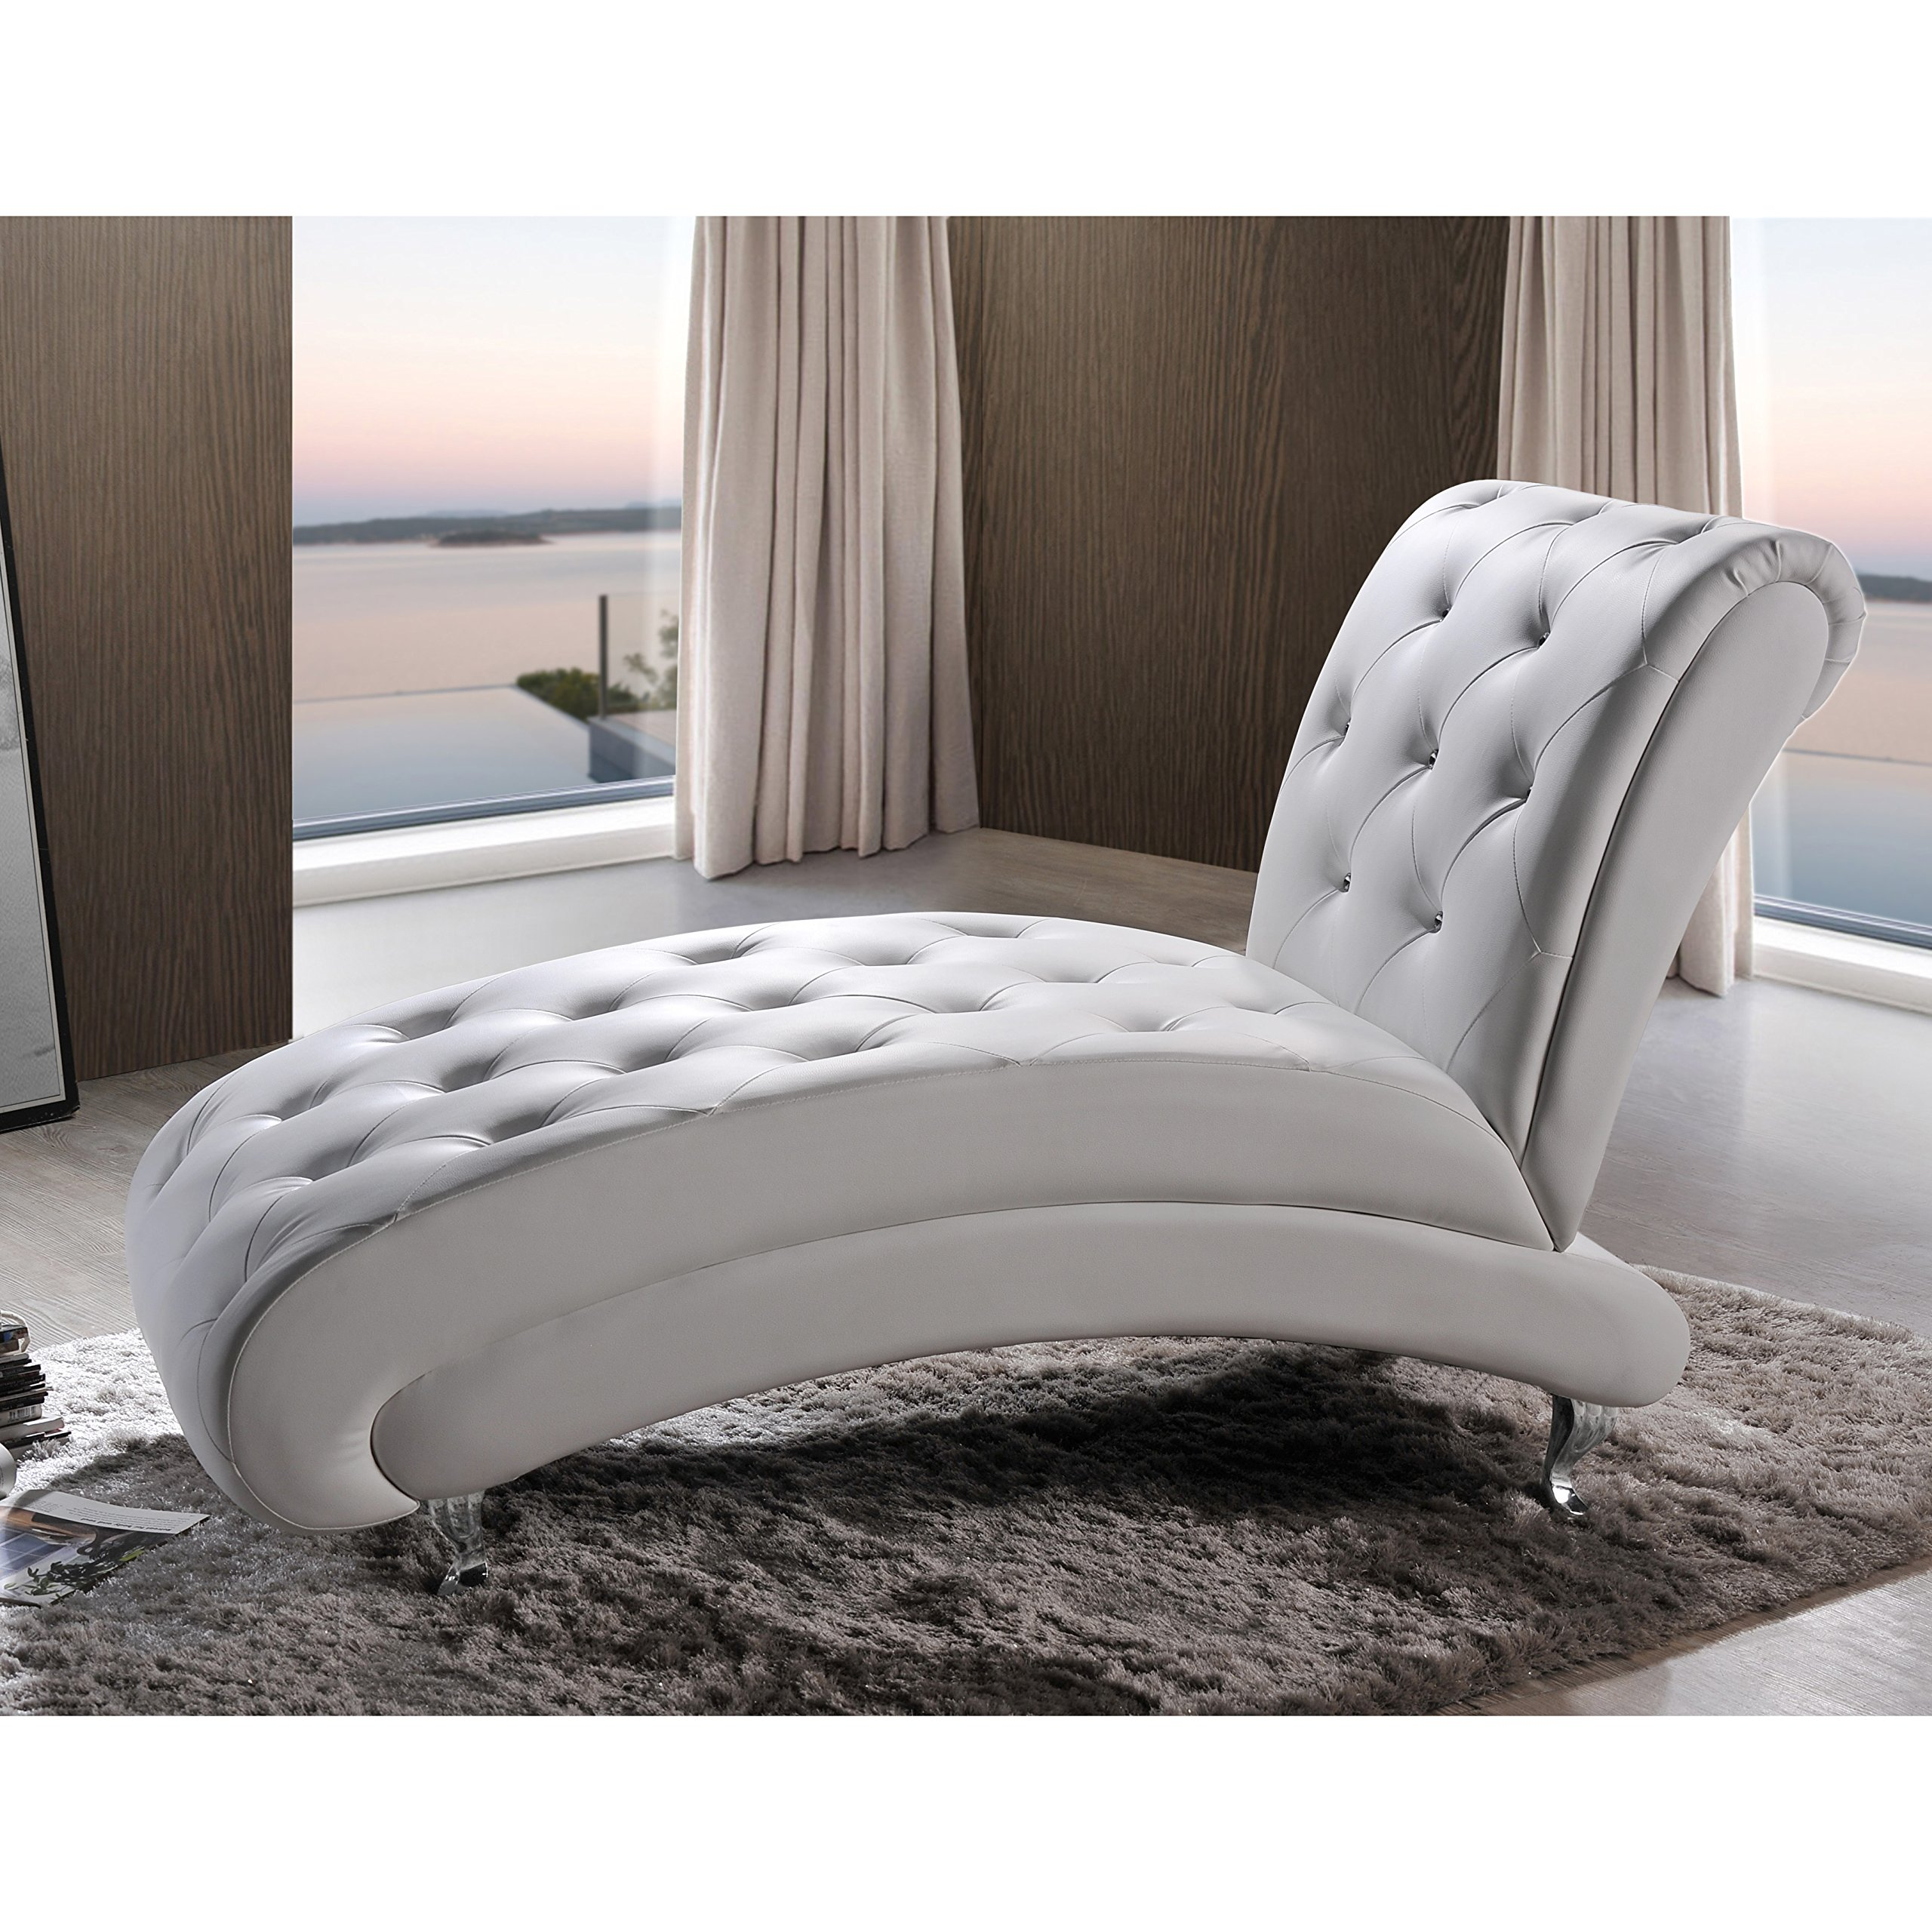 Premium Contemporary Modern Chaise Lounge - Indoor Living Room Bedroom Sofa Chair Upholstered Armless Furniture (White)